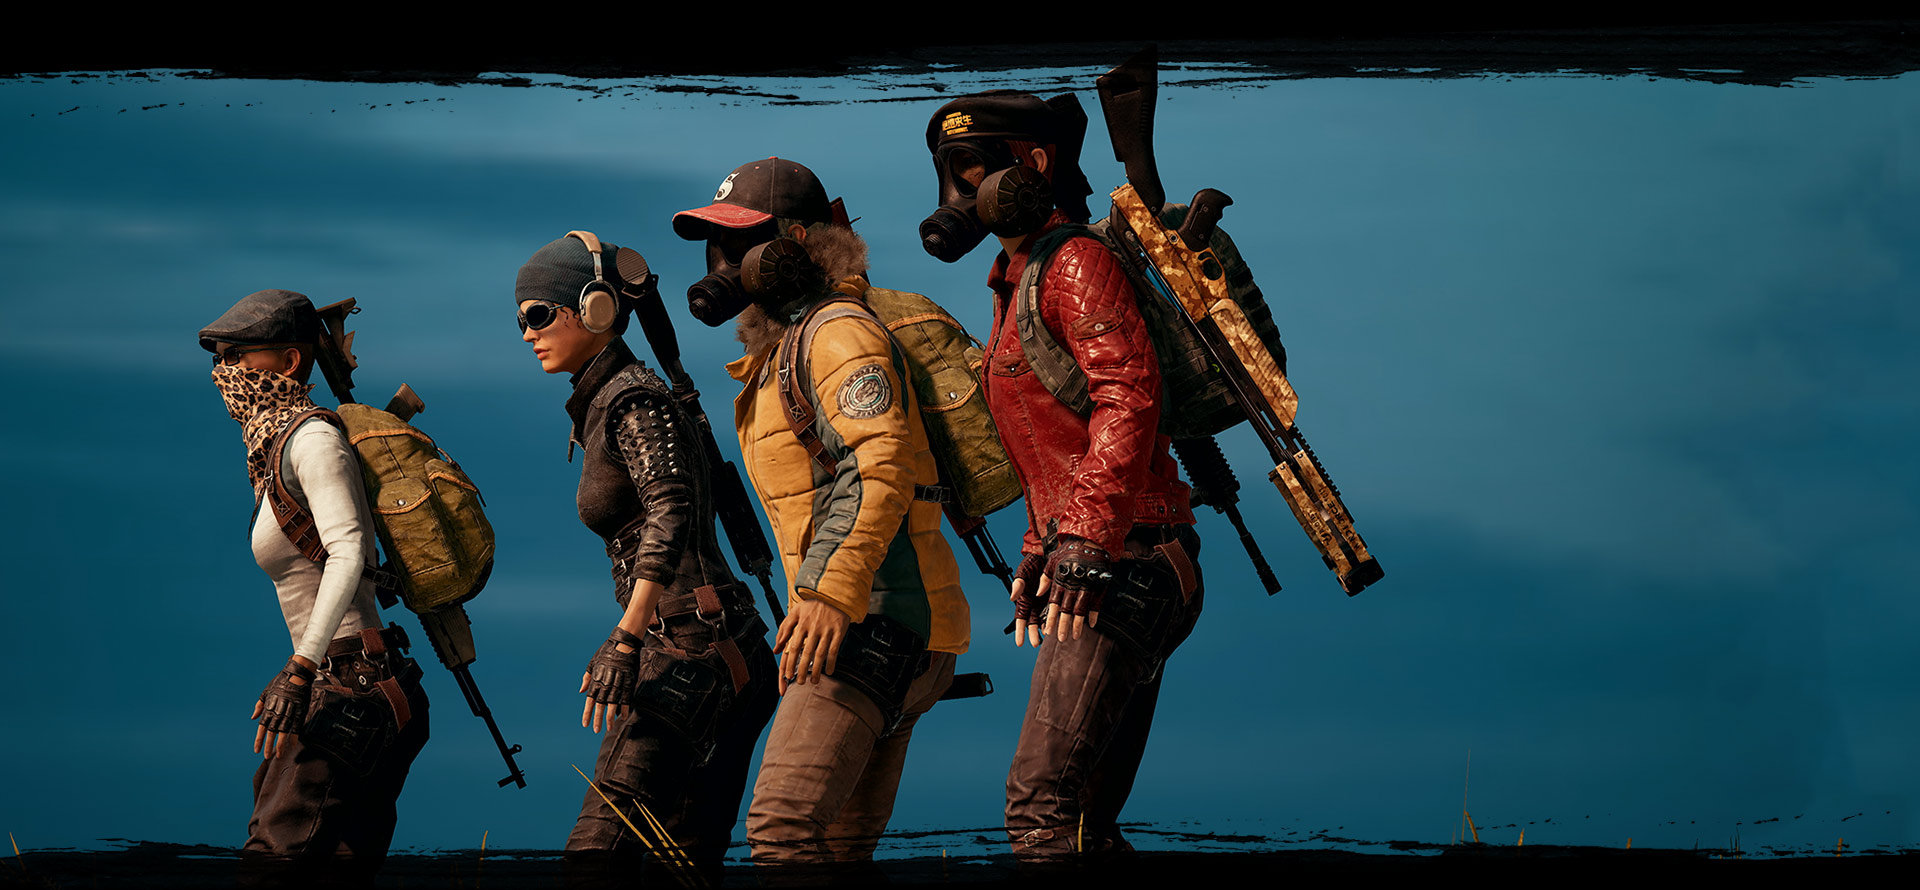 Profile view of four playable characters standing next to each other